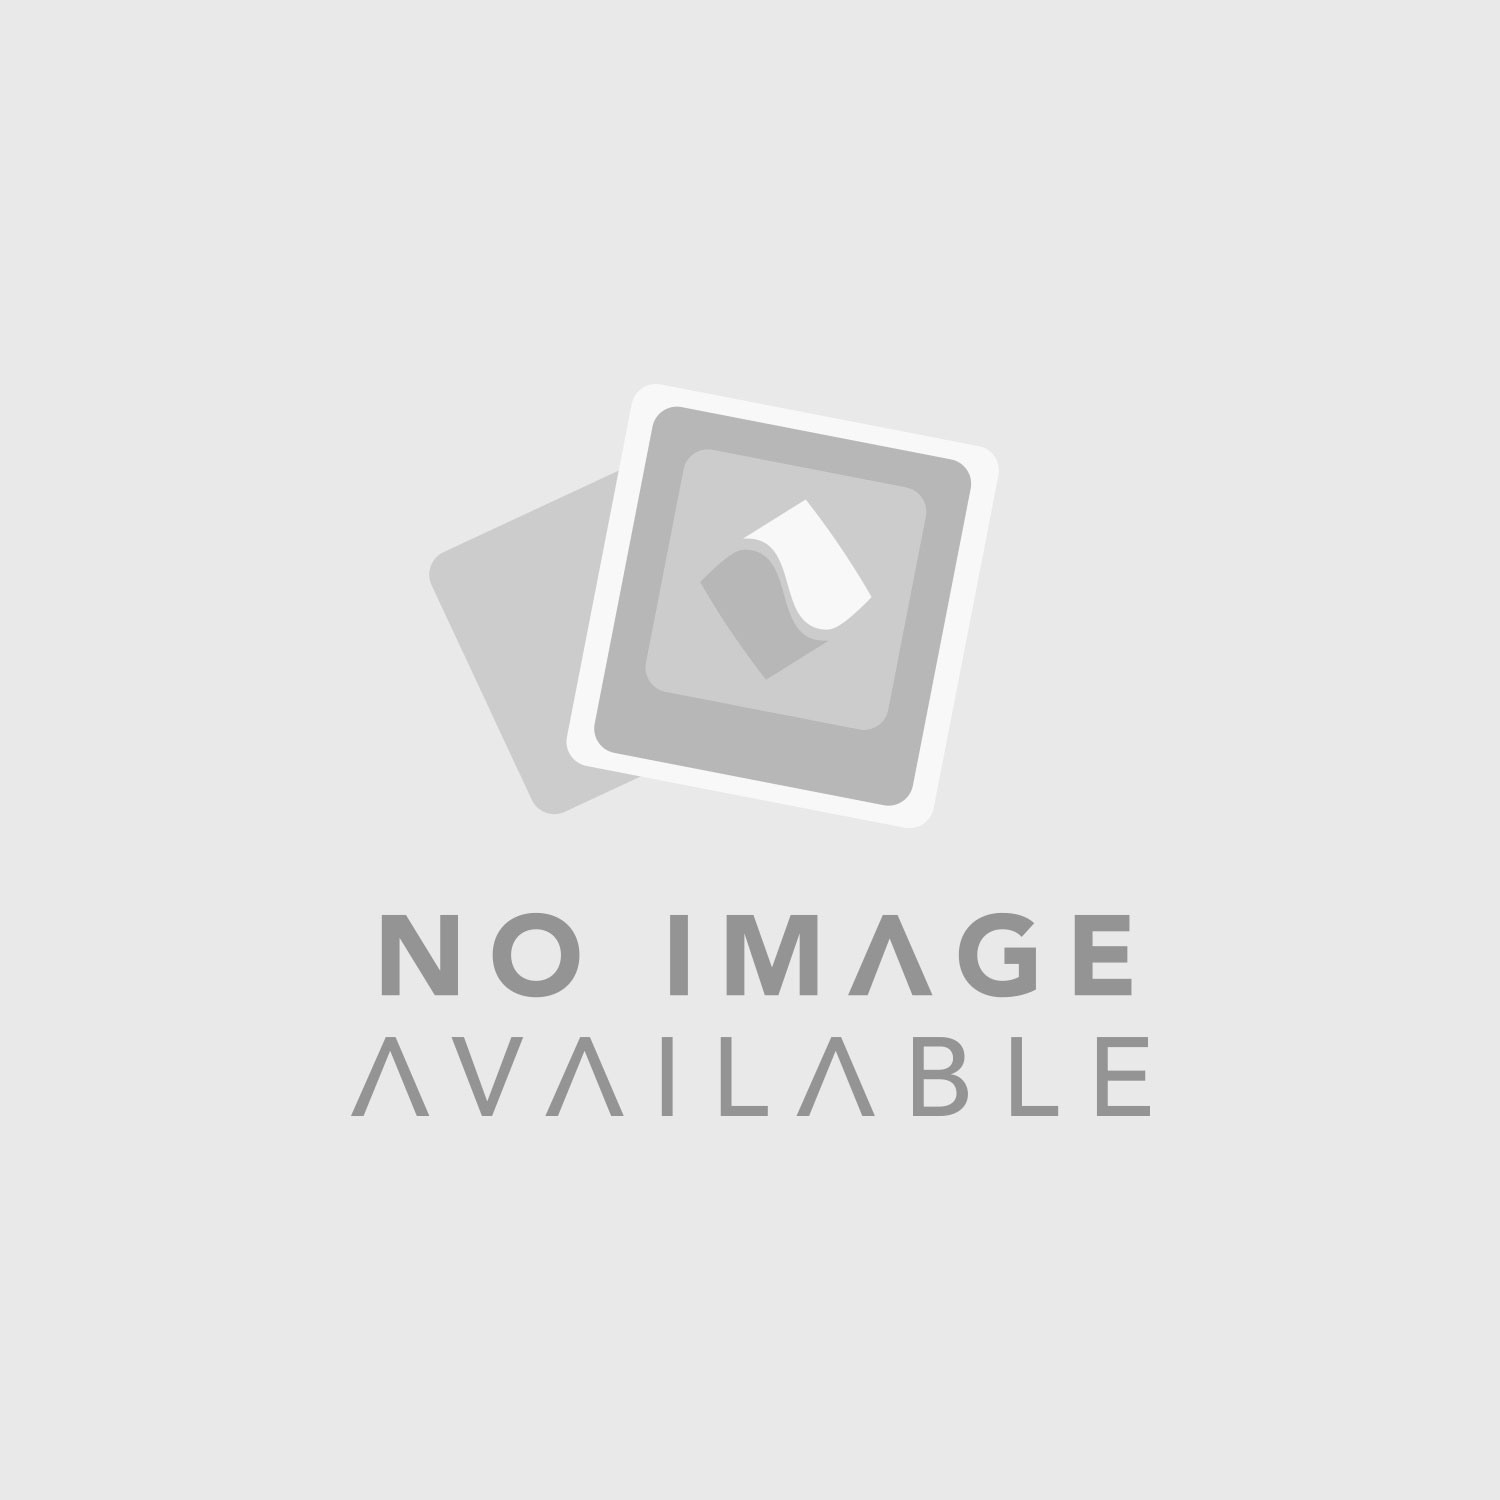 Gator Cases G-TOUR PEDALBOARD-LGW Large Pedal Board with Wheels